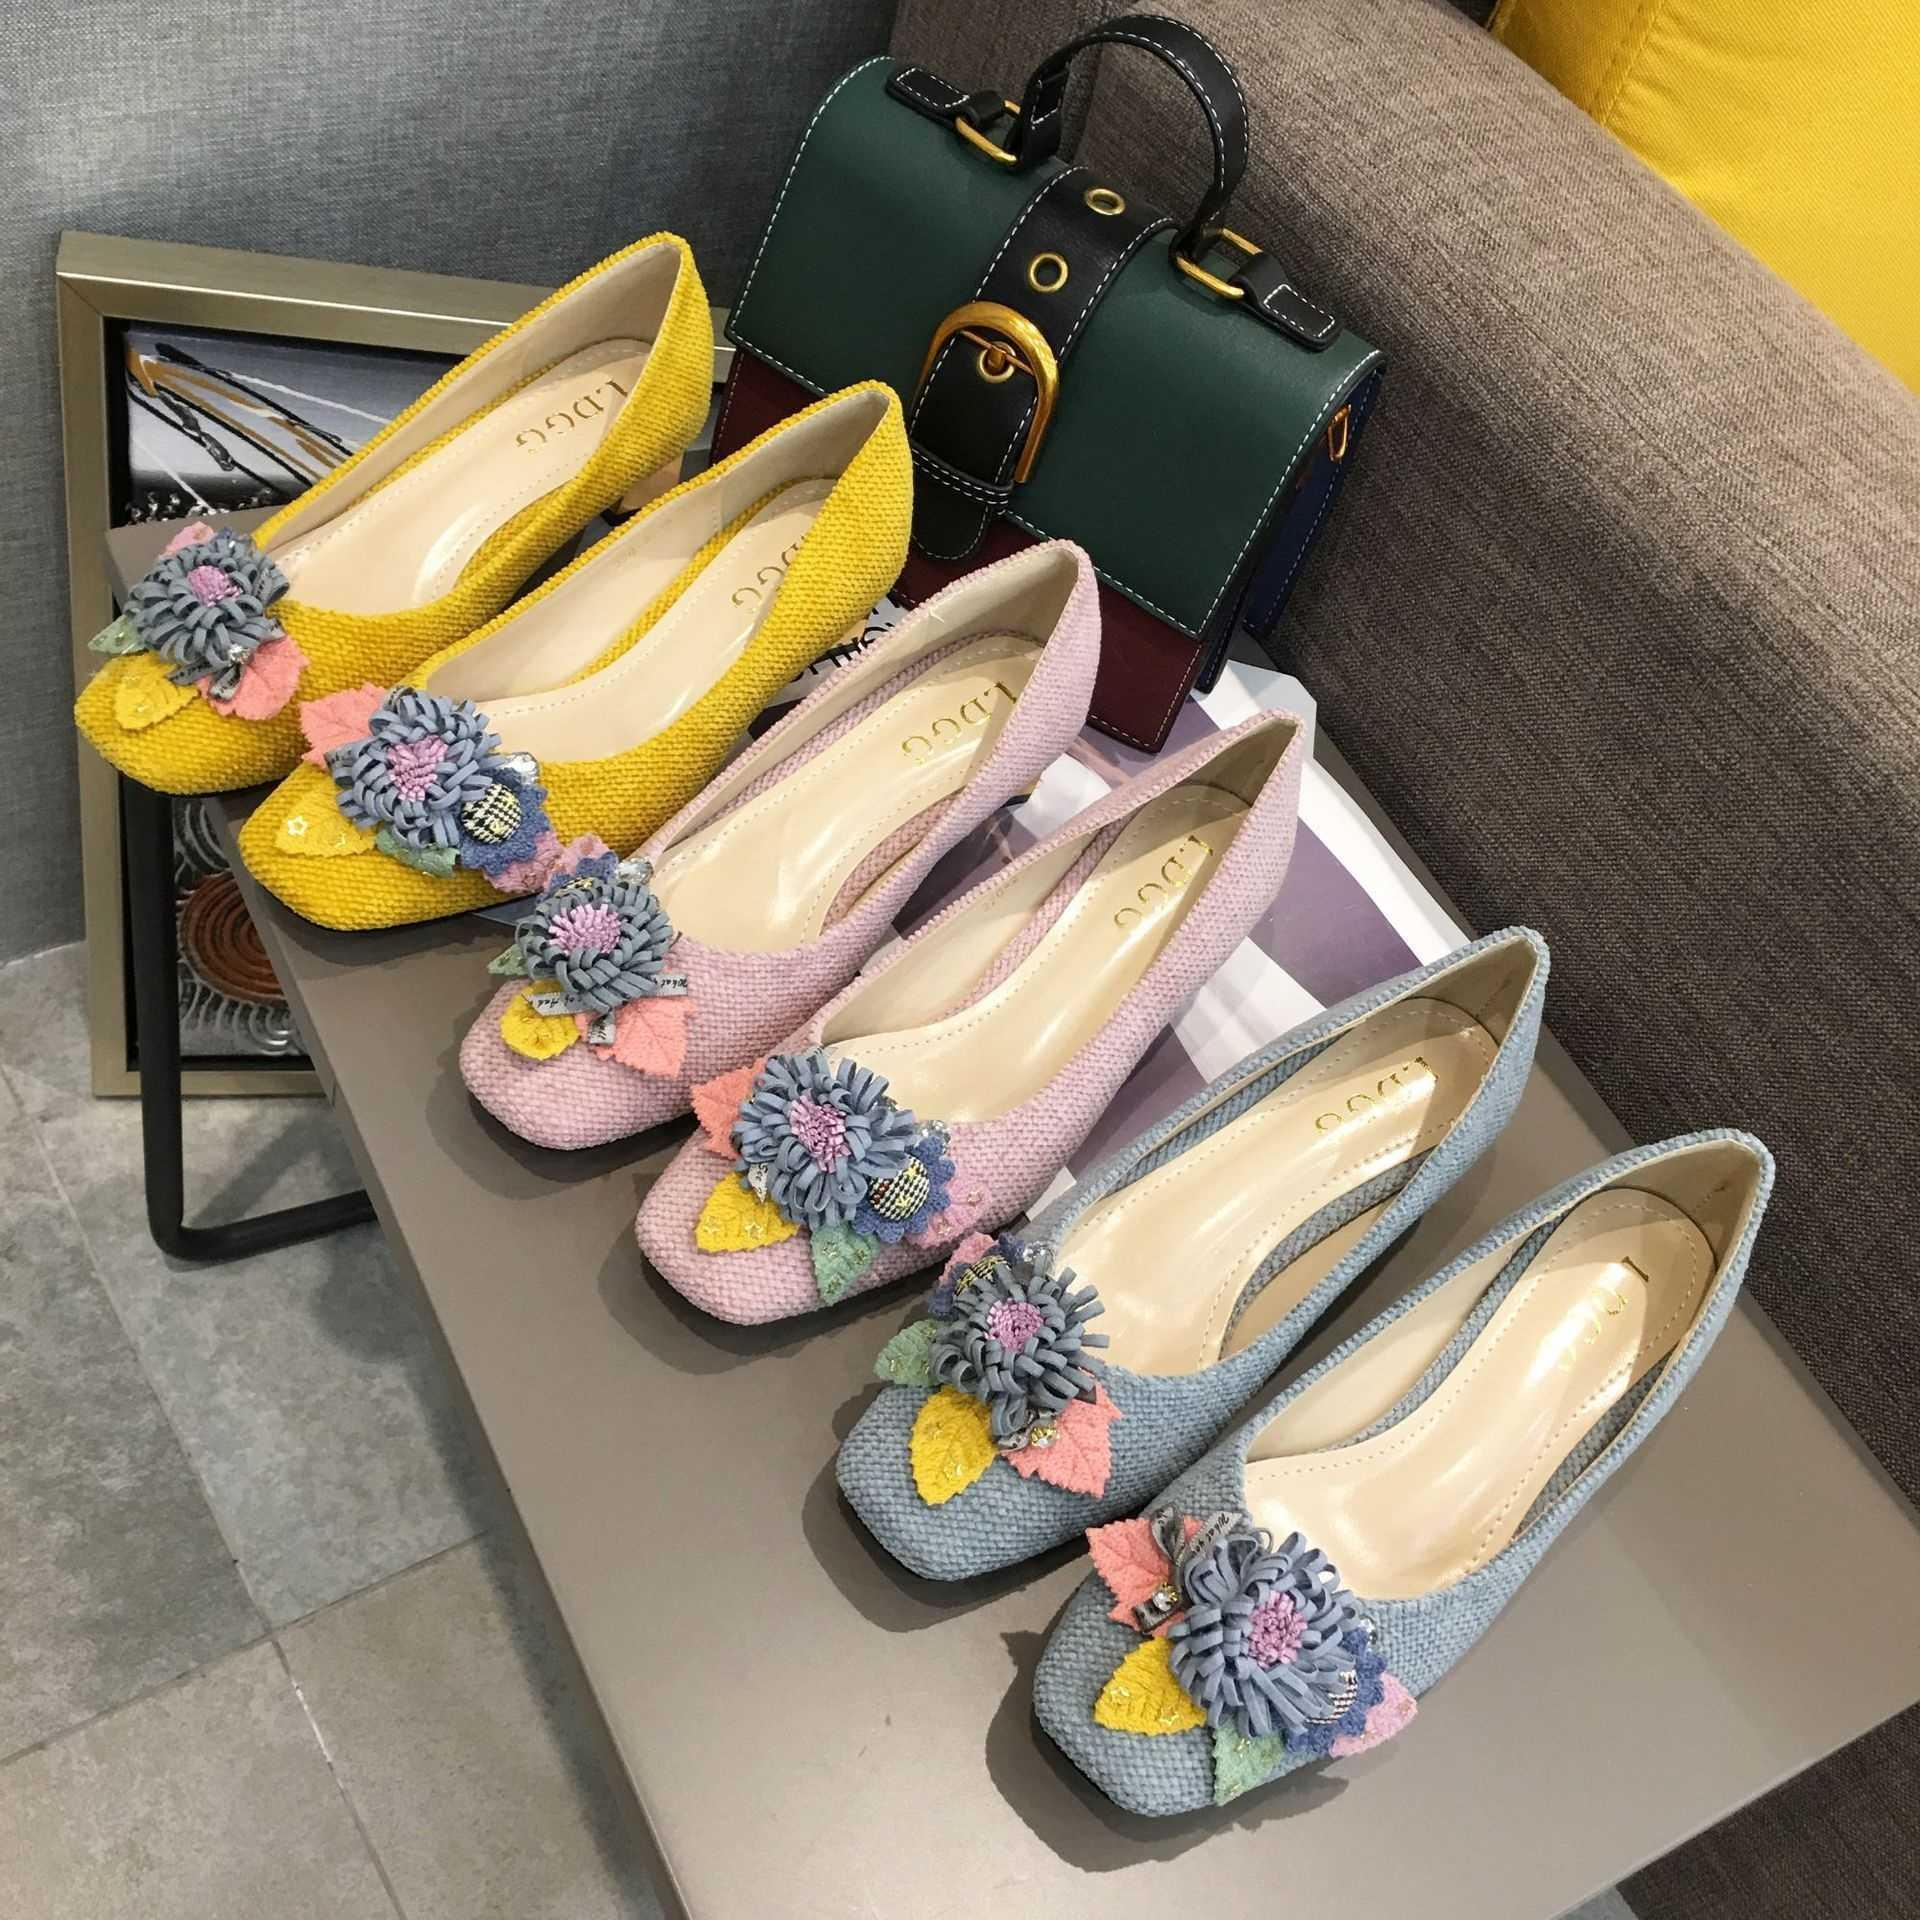 woman casual shoes 2019 fashion Lady Gold Crude High heel shoe square Toe cap chrysanthemum Colored leaves design Asian